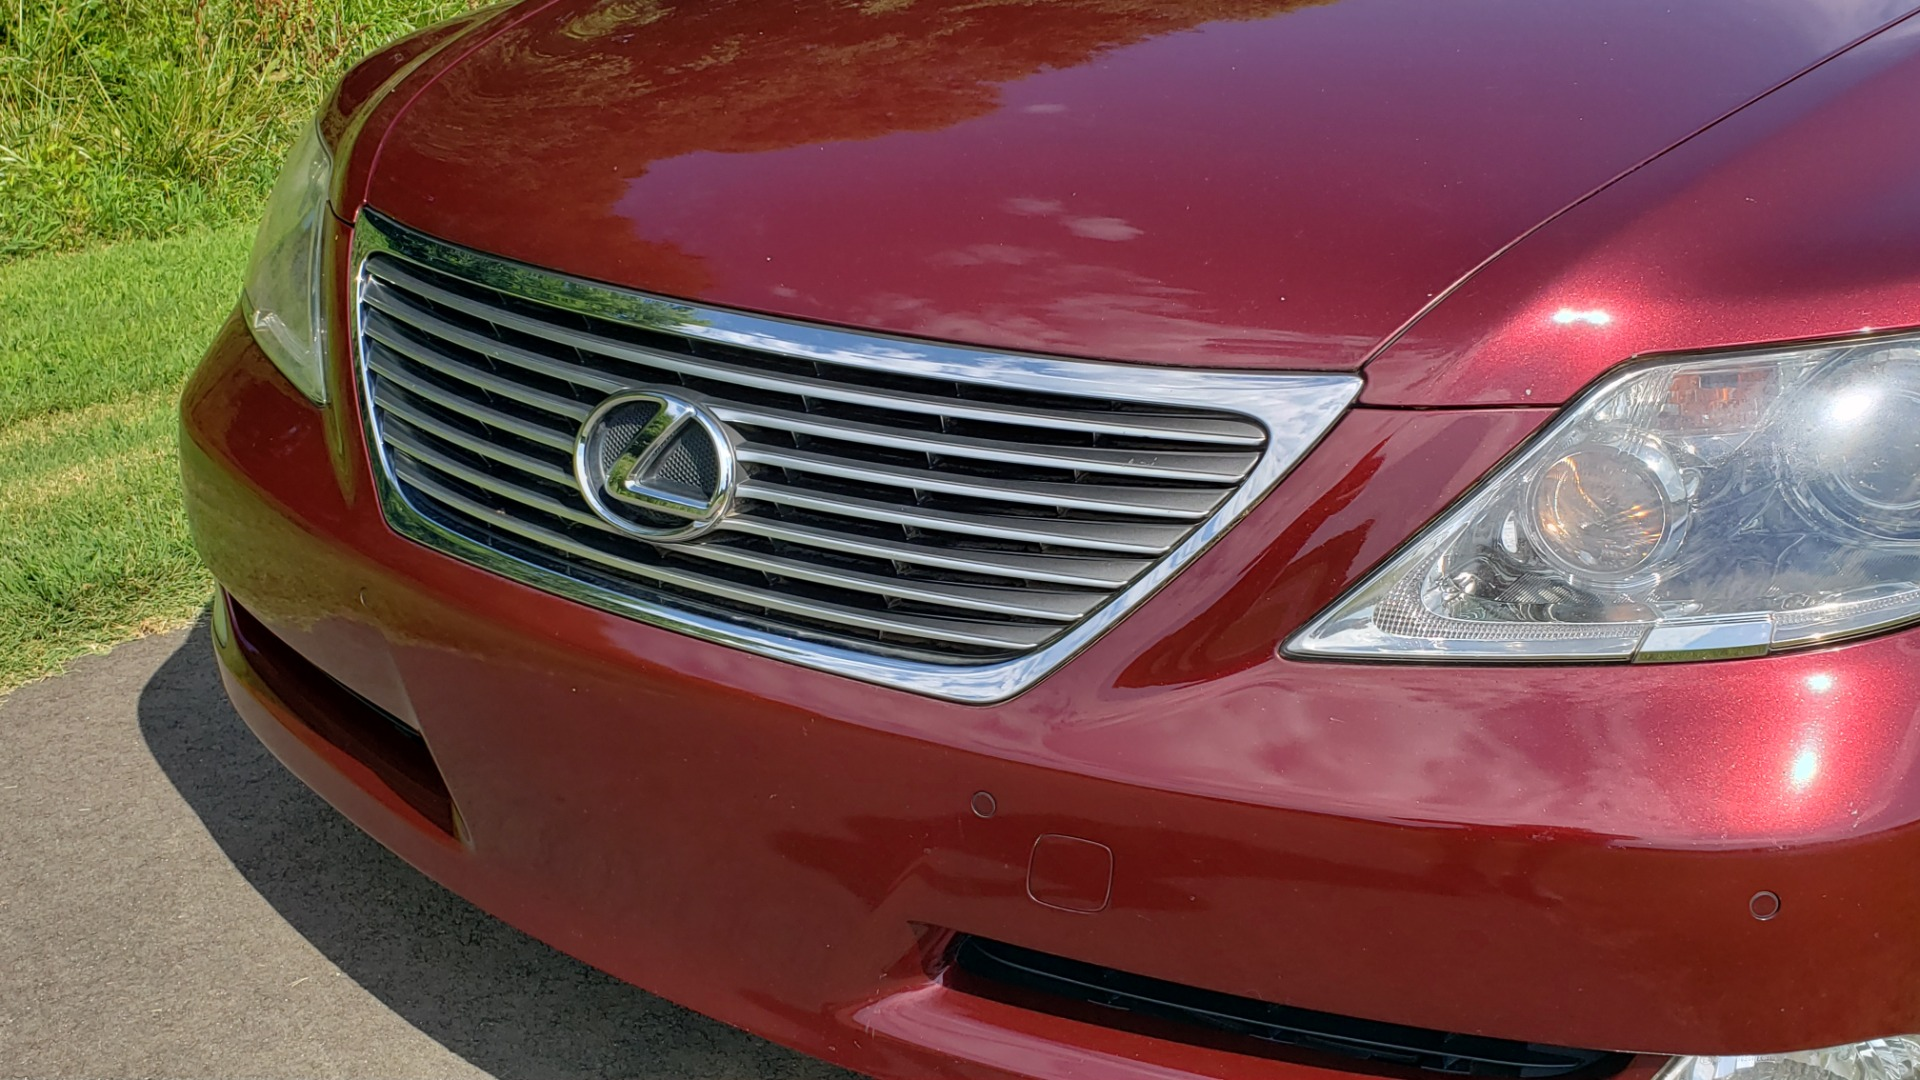 Used 2007 Lexus LS 460 LWB / LUX / NAV / SUNROOF / MARK LEVINSON SND / AIR SUSP for sale Sold at Formula Imports in Charlotte NC 28227 12